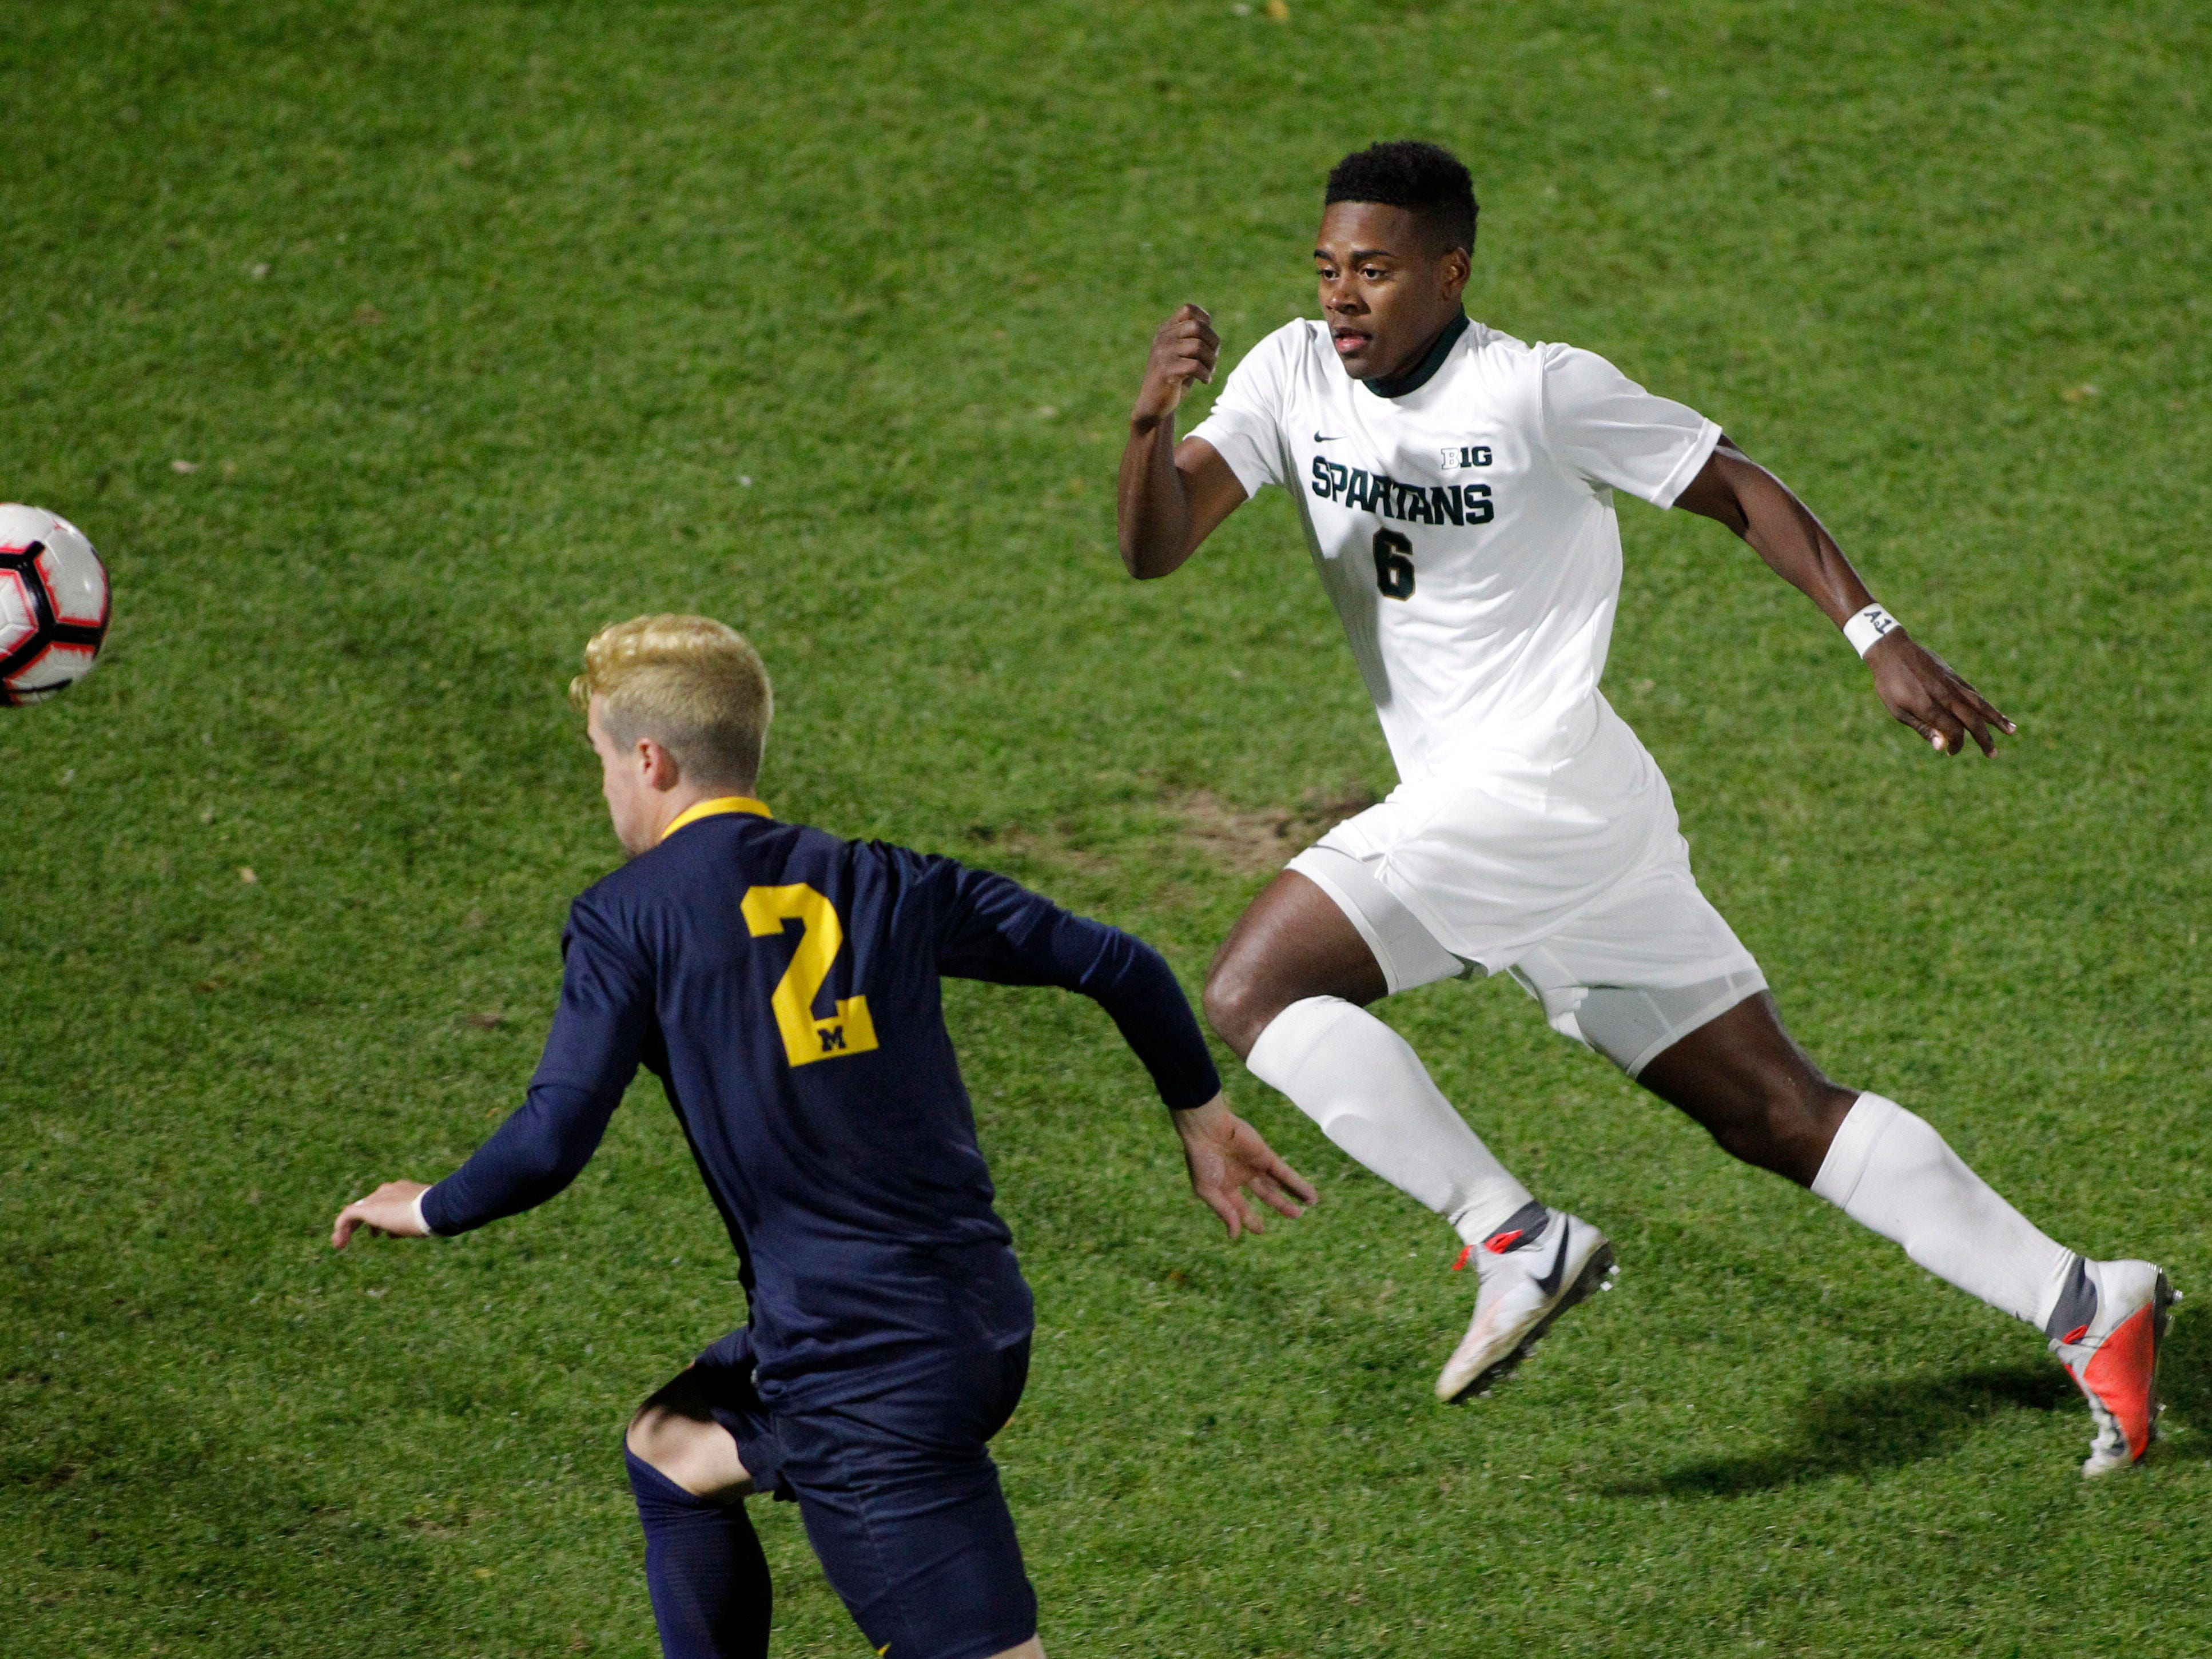 Michigan State's DeJuan Jones, right, and Michigan's Marcello Borges (2) chase the ball, Tuesday, Oct. 23, 2018, in East Lansing, Mich. The teams played to a 1-1 draw.